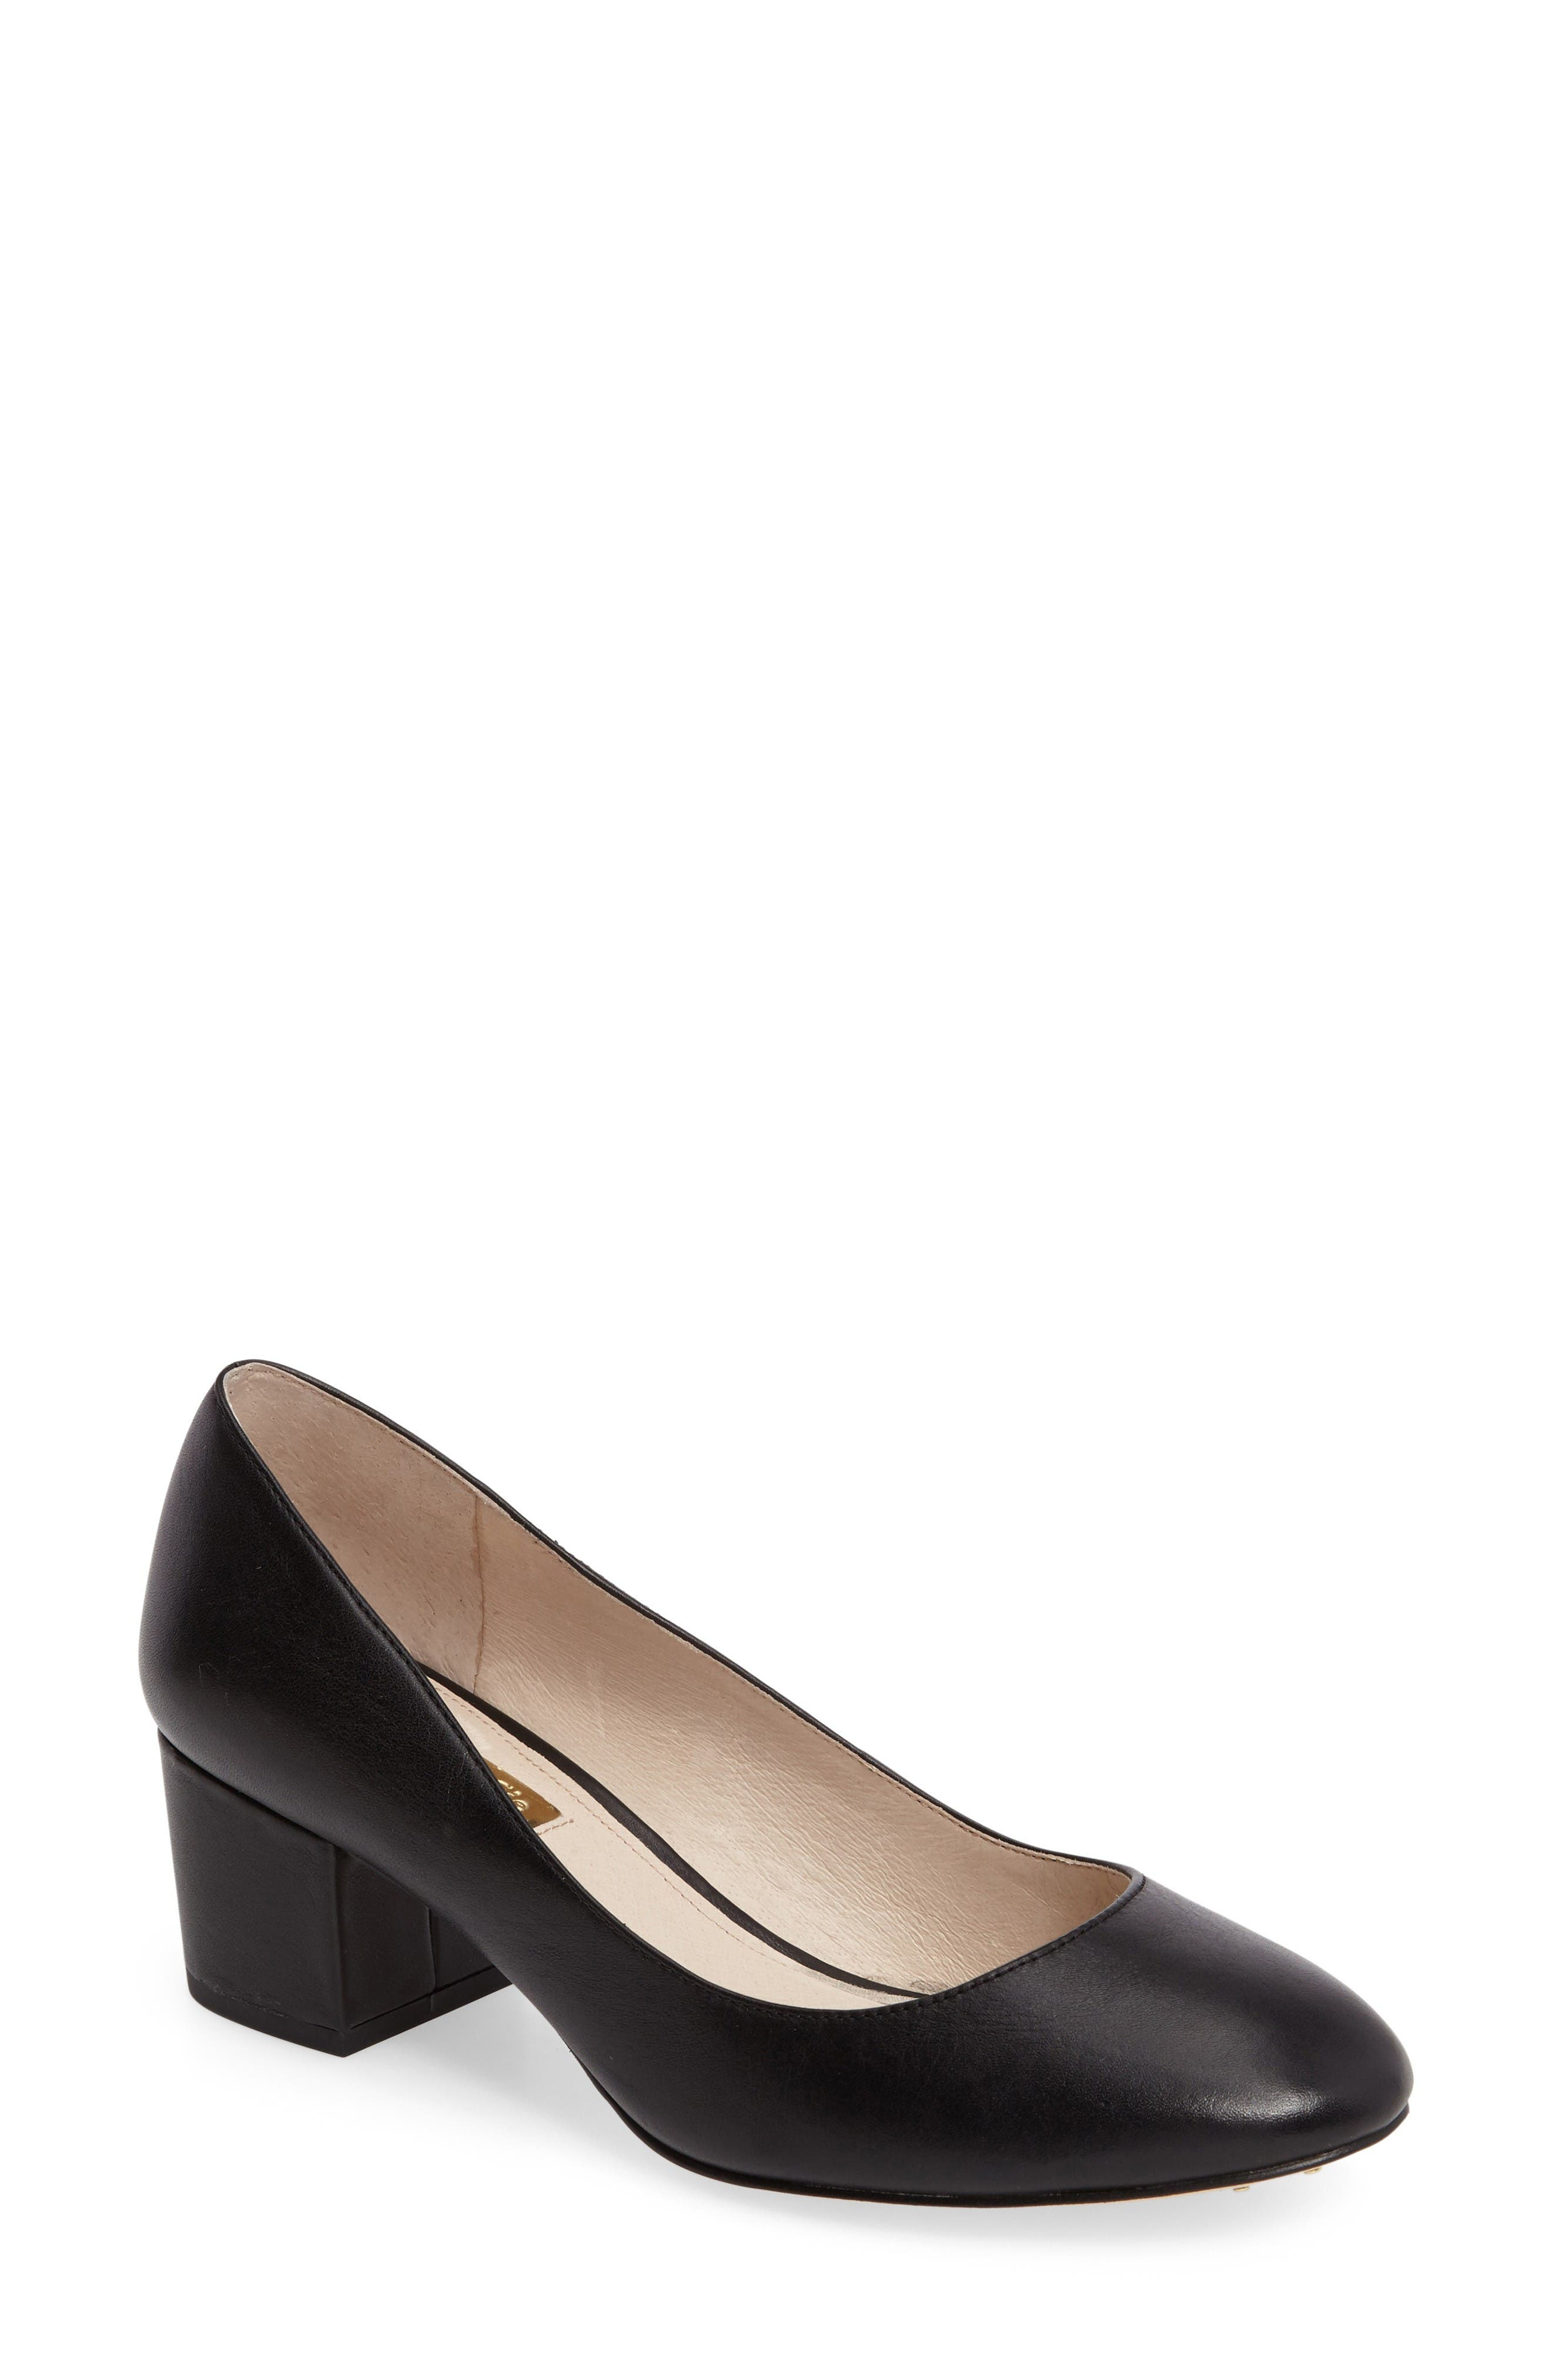 Louise et Cie Knox Pump (Women)